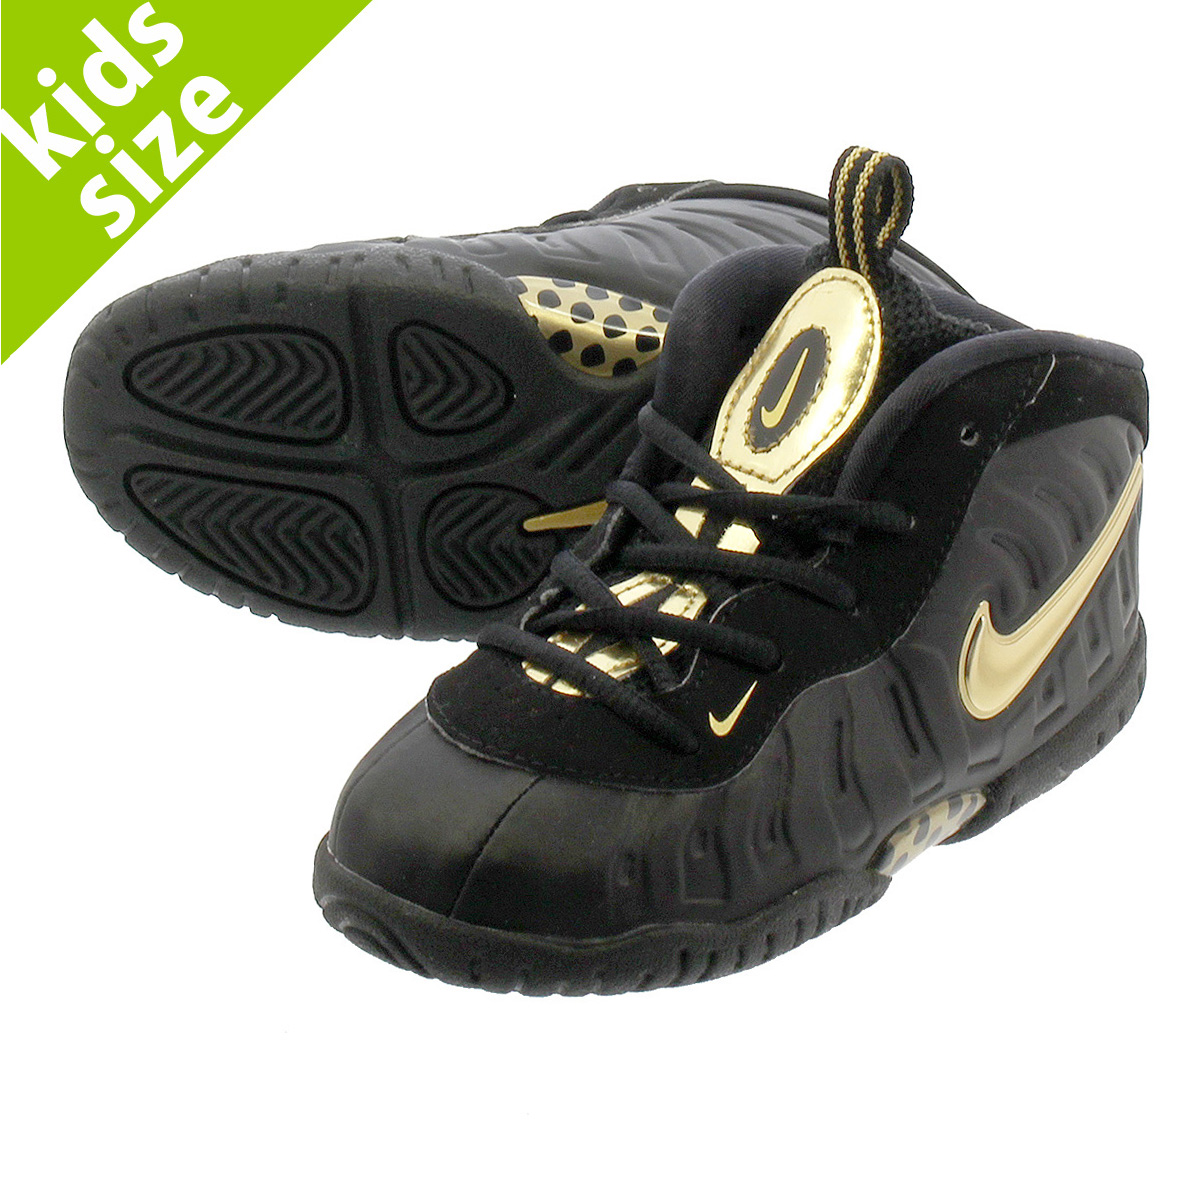 new styles 6e8c6 c3f05 NIKE AIR FORCE I FOAMPOSITE PRO TD ナイキエアリトルポジットプロ TD BLACK/METALLIC GOLD